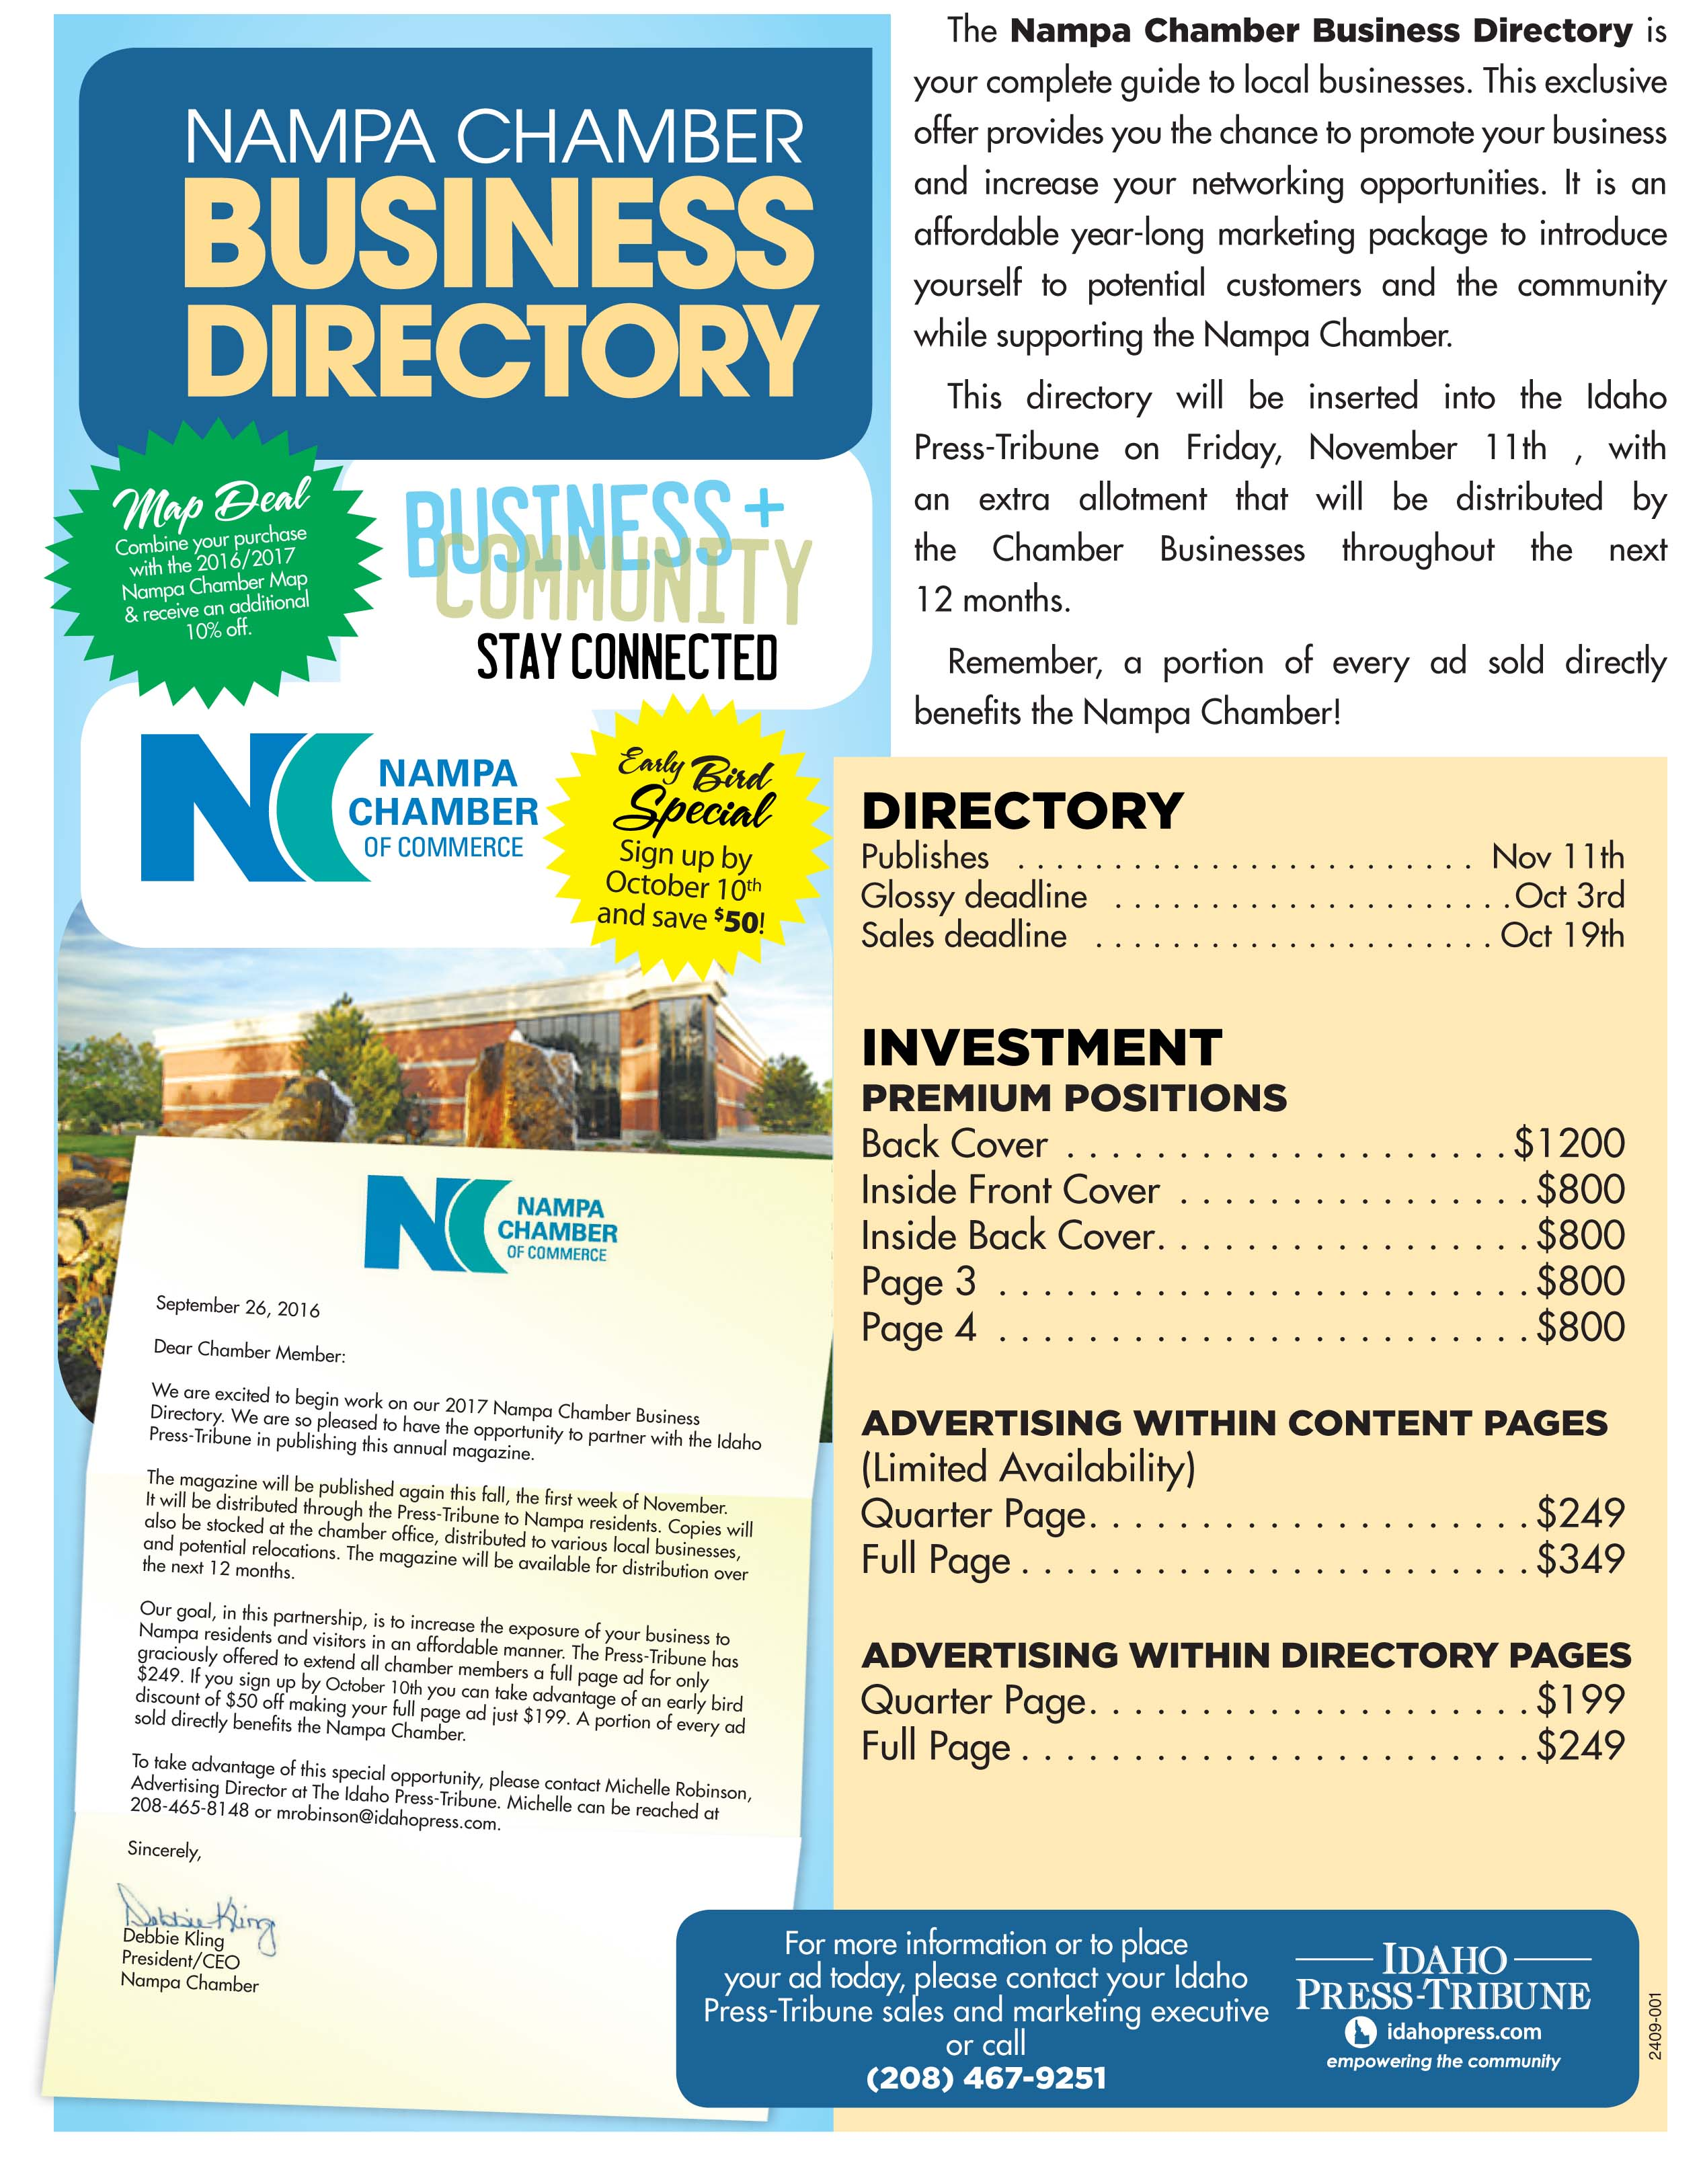 nampa chamber of commerce business directory flyer 2017